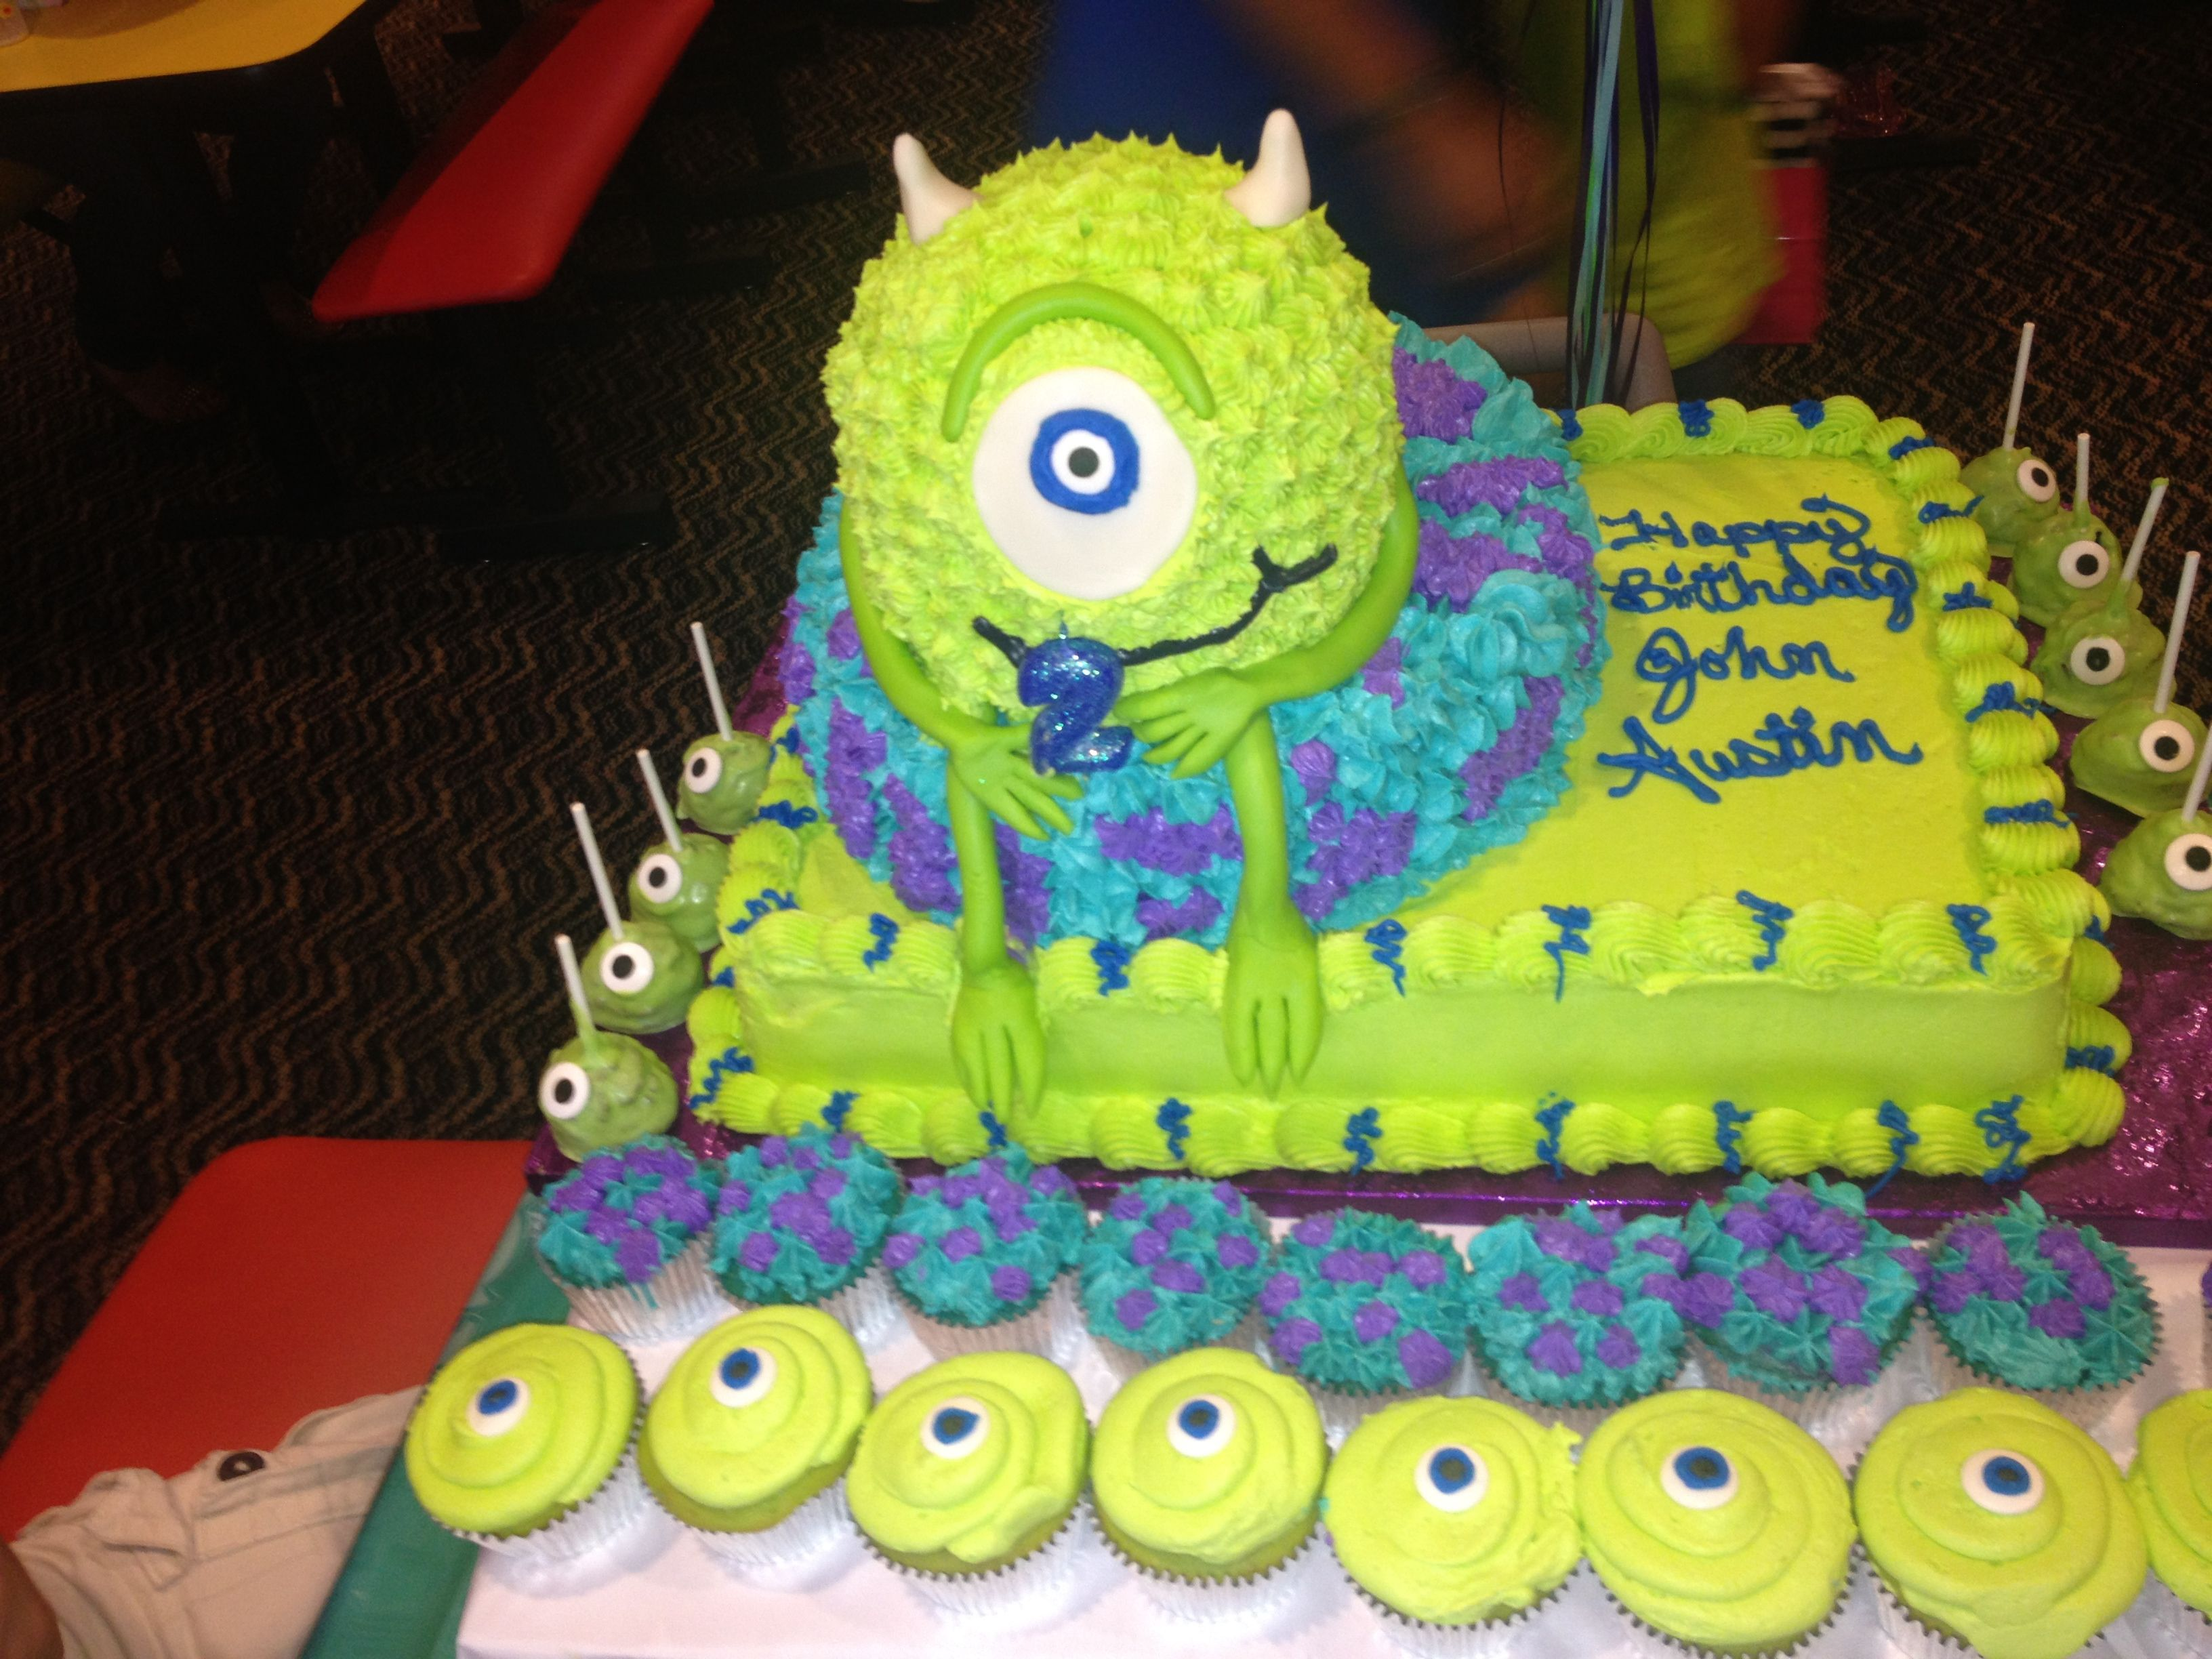 Monsters Inc delish cake! She did such a great job.